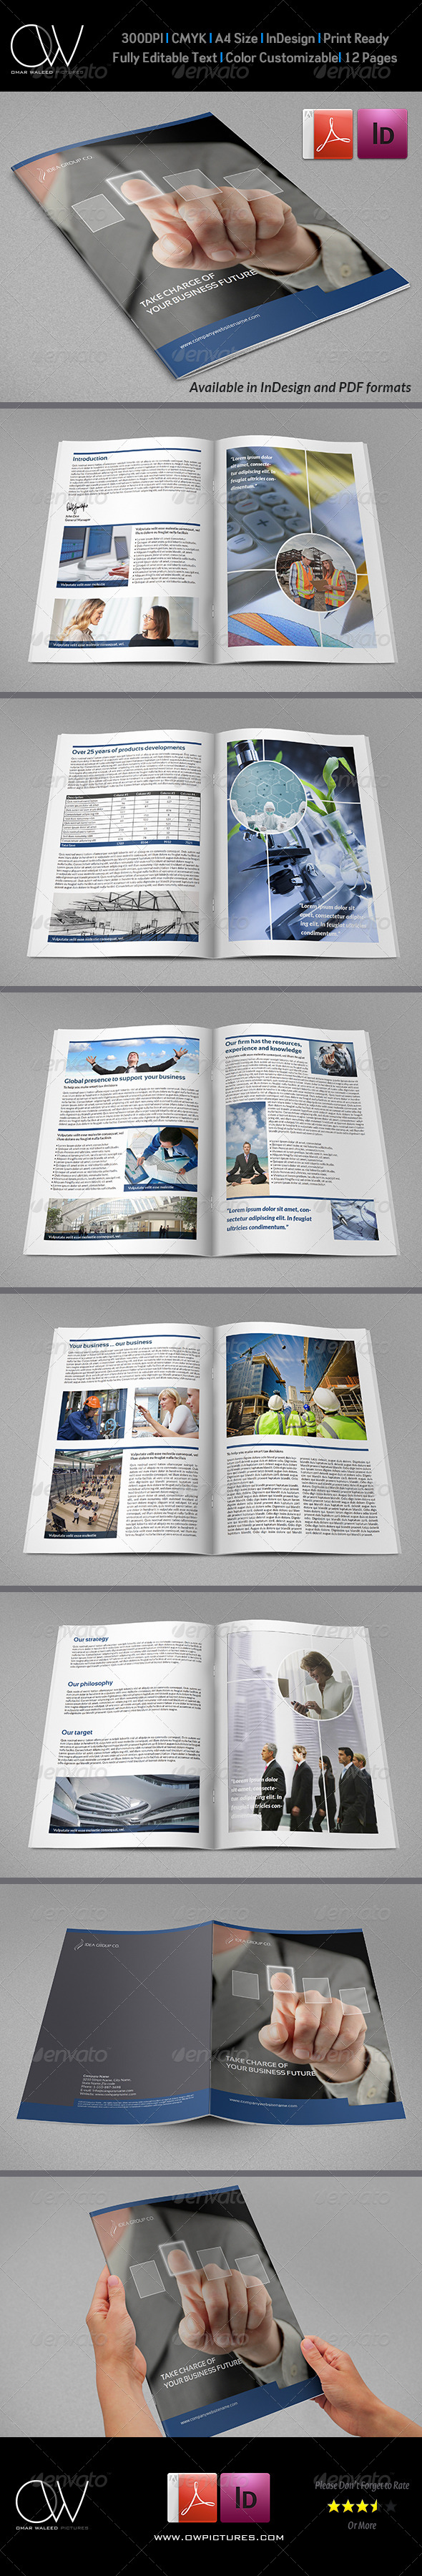 Corporate Brochure Template Vol.22 - 12 Pages - Corporate Brochures